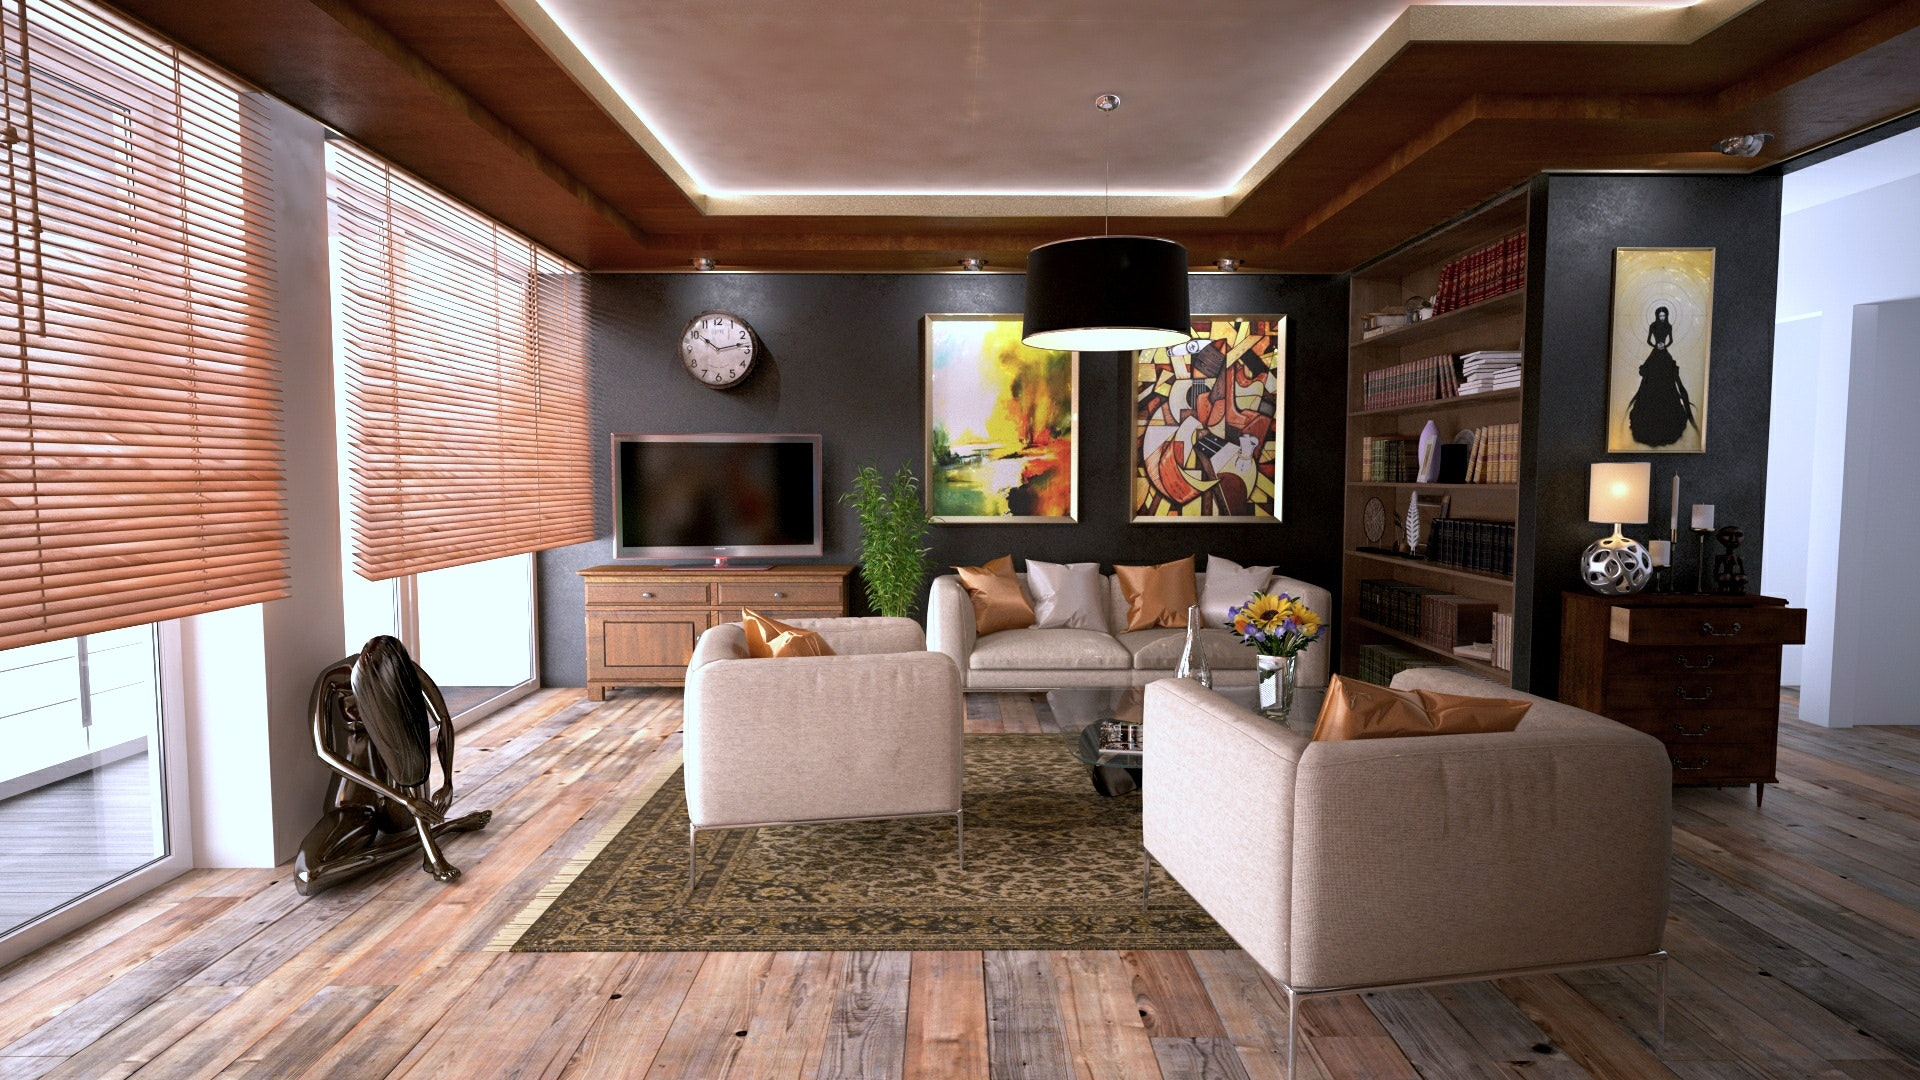 Best Interior Designer In Mumbai Interior Contractor Rasouk,Tribal Sleeve Tattoo Designs